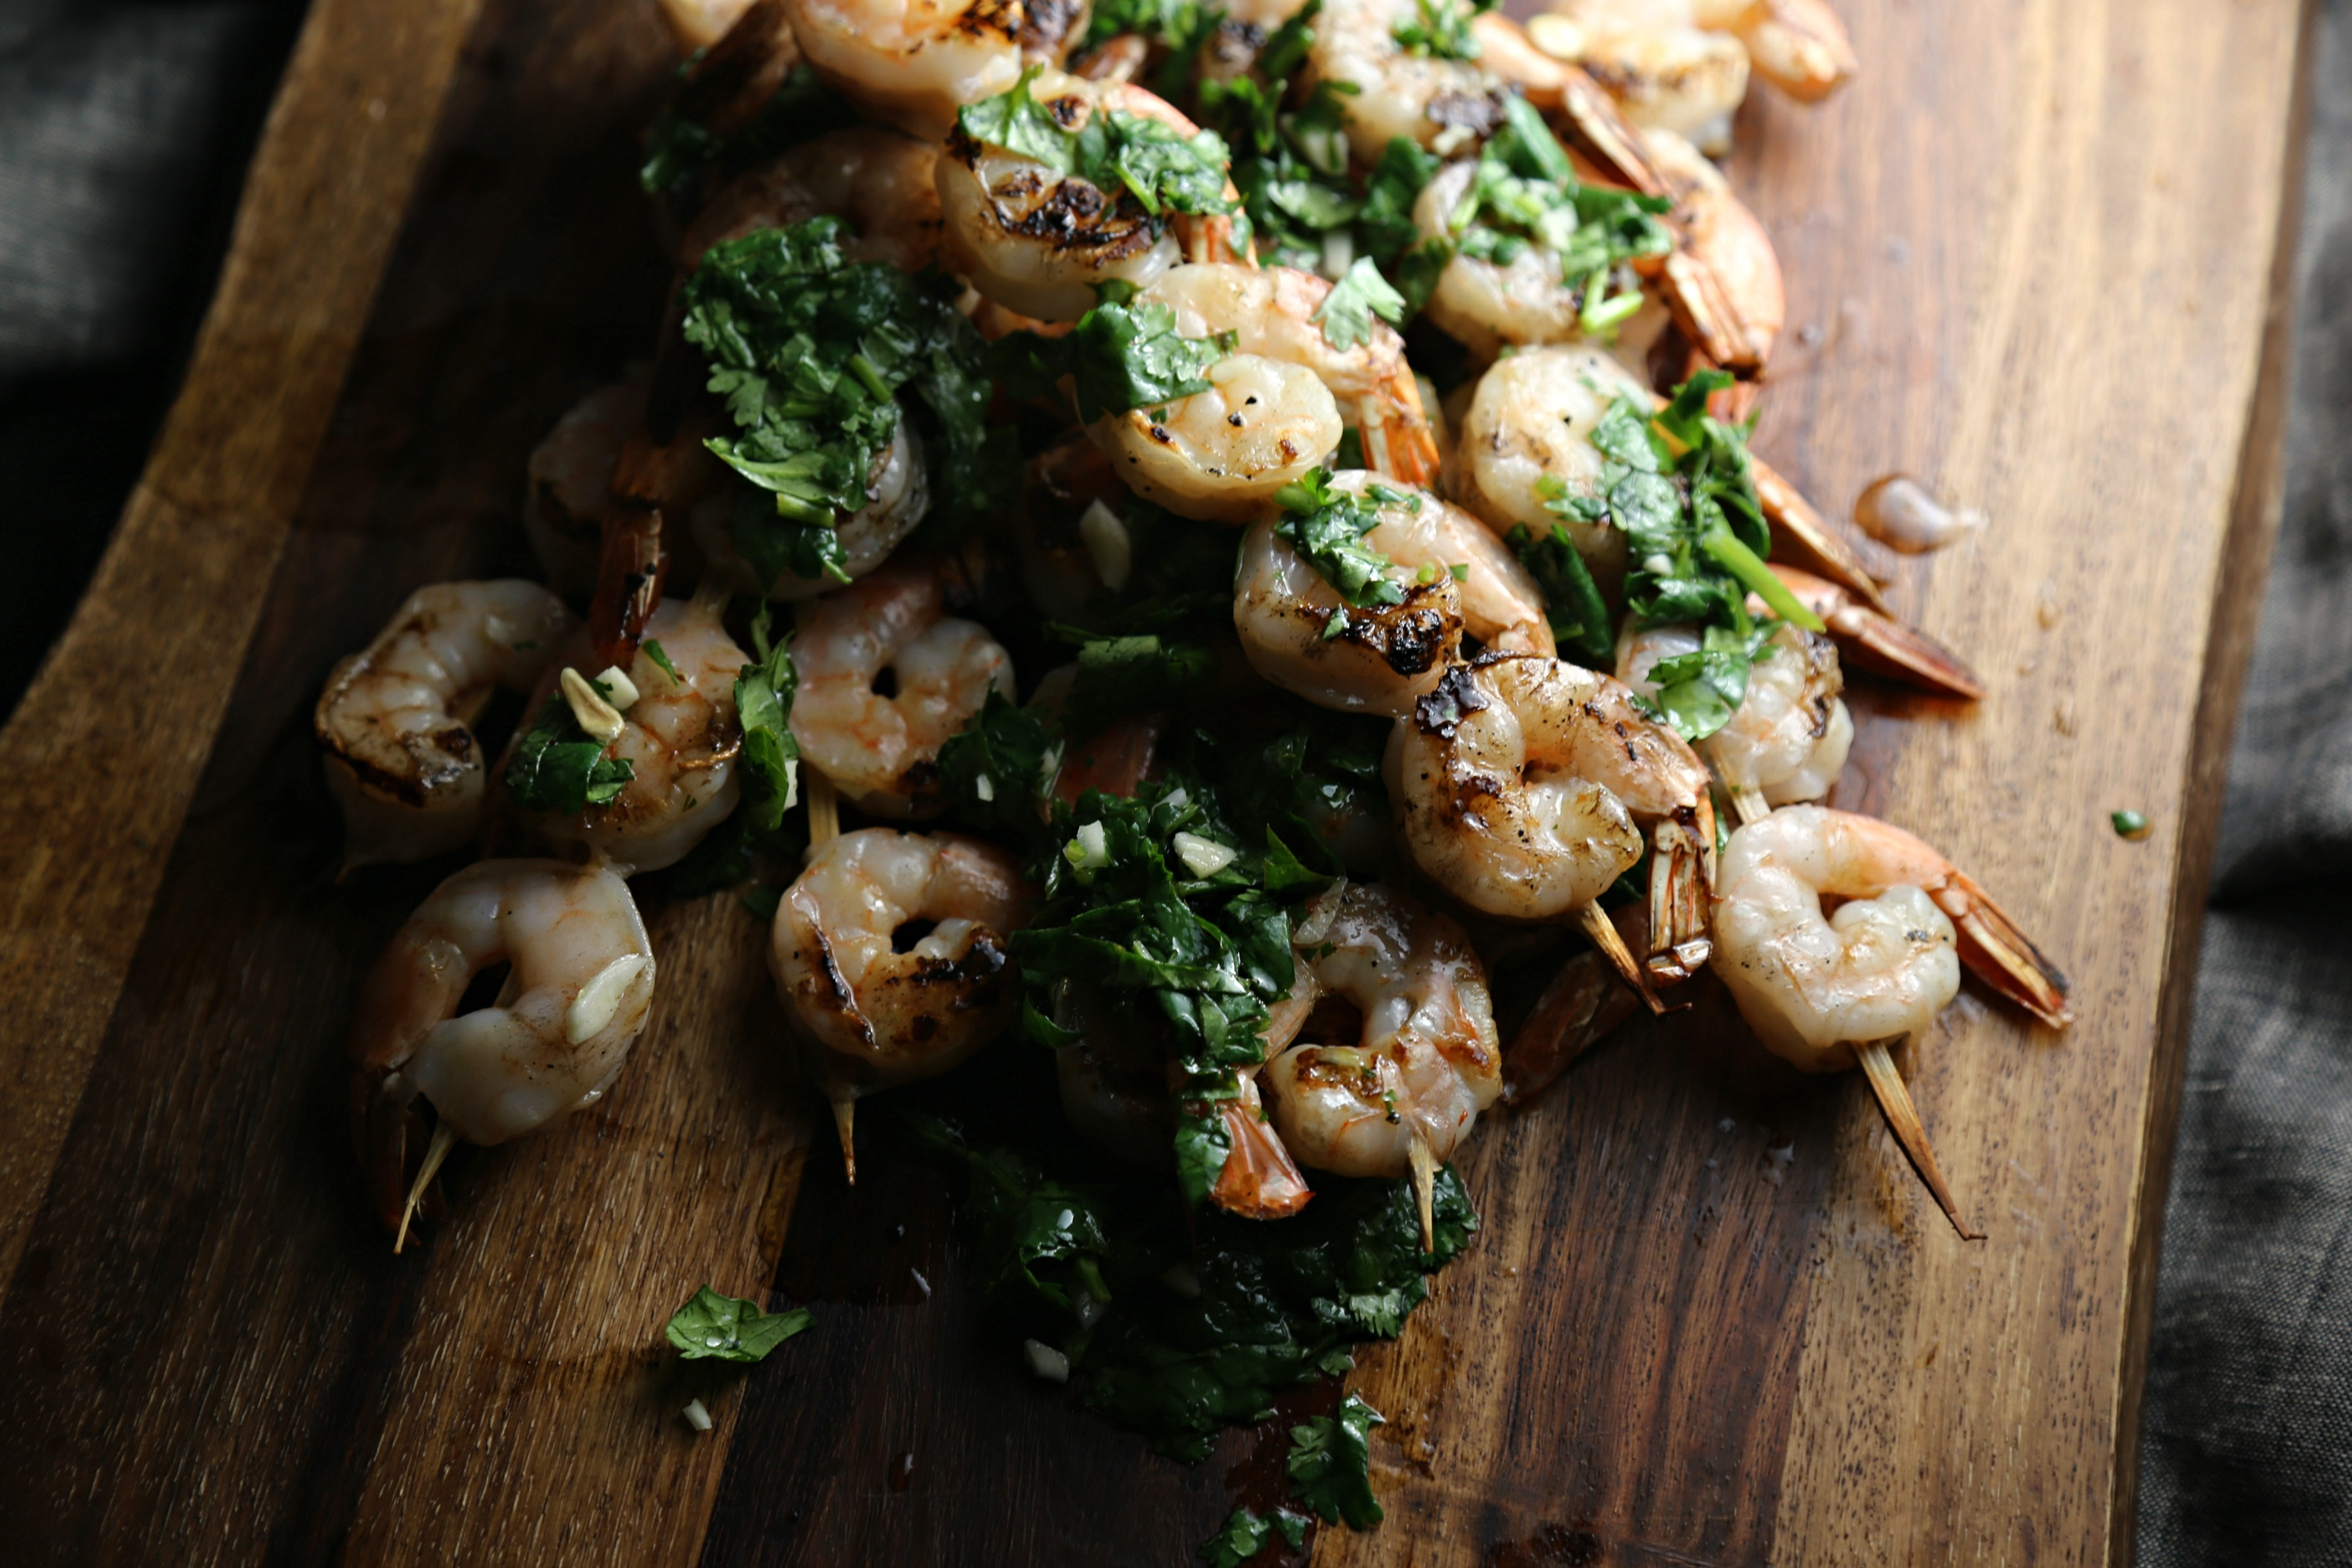 grilled-skewered-shrimp-cilantro-lemon-salsa-verde-vianneyrodriguez-sweetlifebake